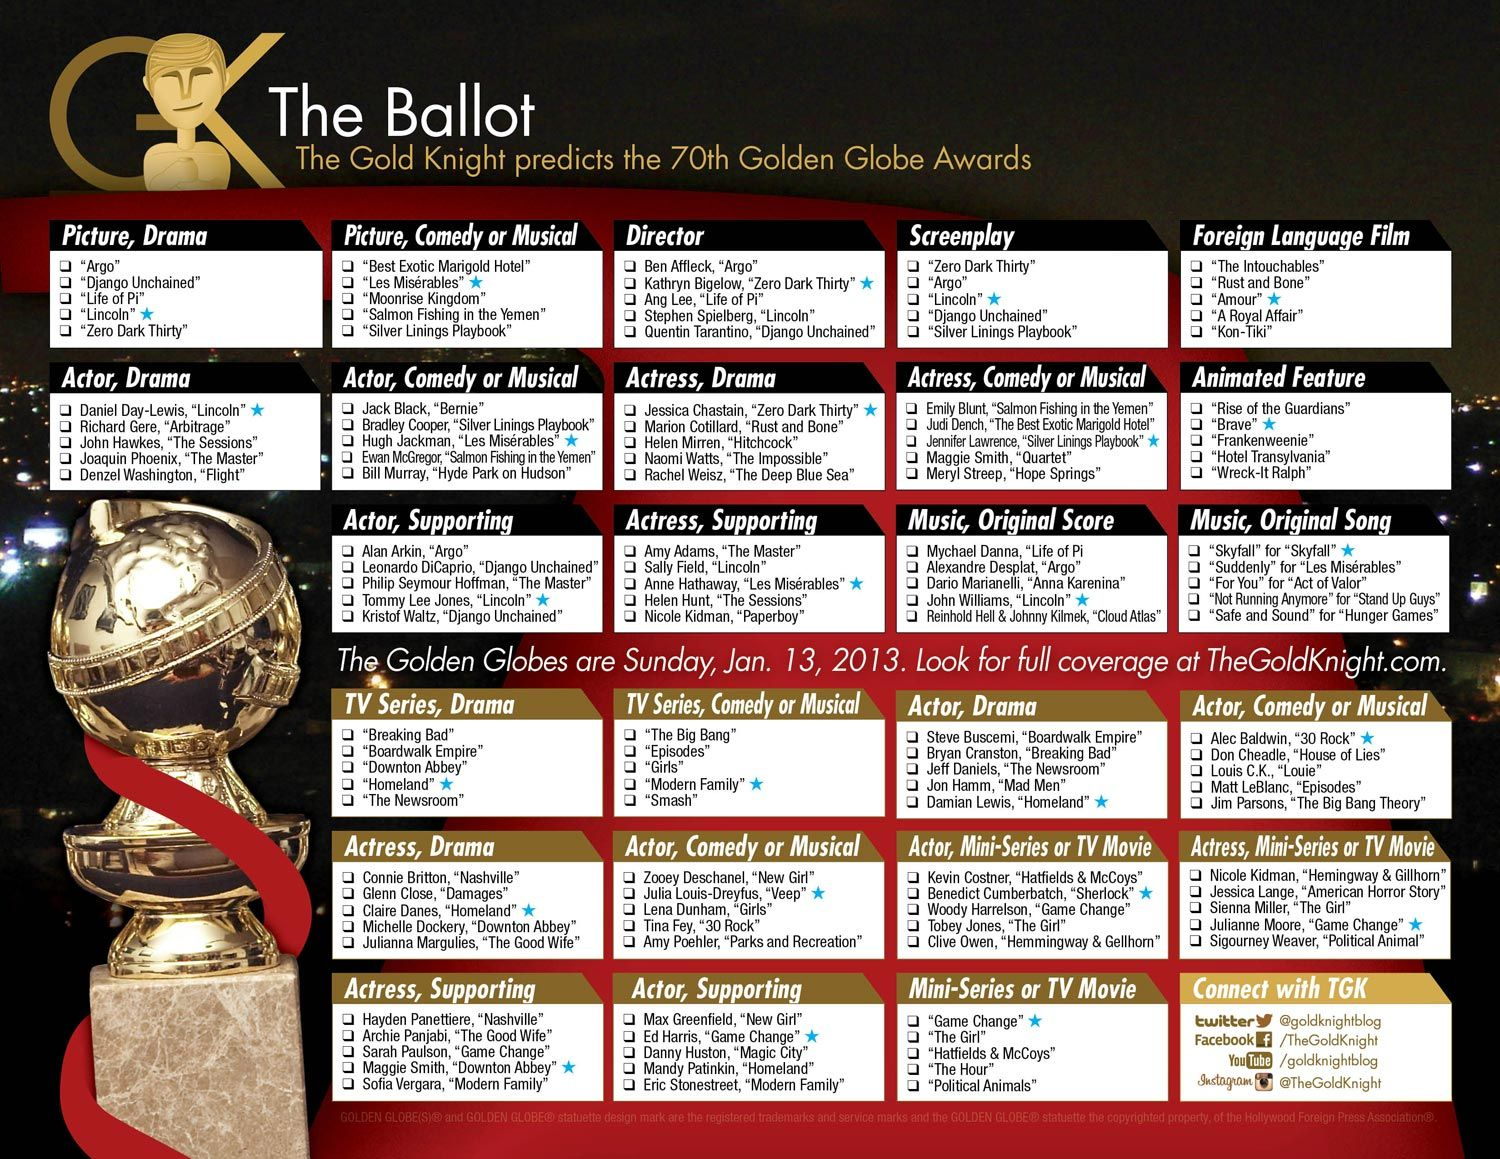 Golden Globes Need A Ballot We Ve Got You Covered Http Www Thegoldknight Com 2013 01 2013 Golden Globe Award Academy Awards Party Foreign Language Film